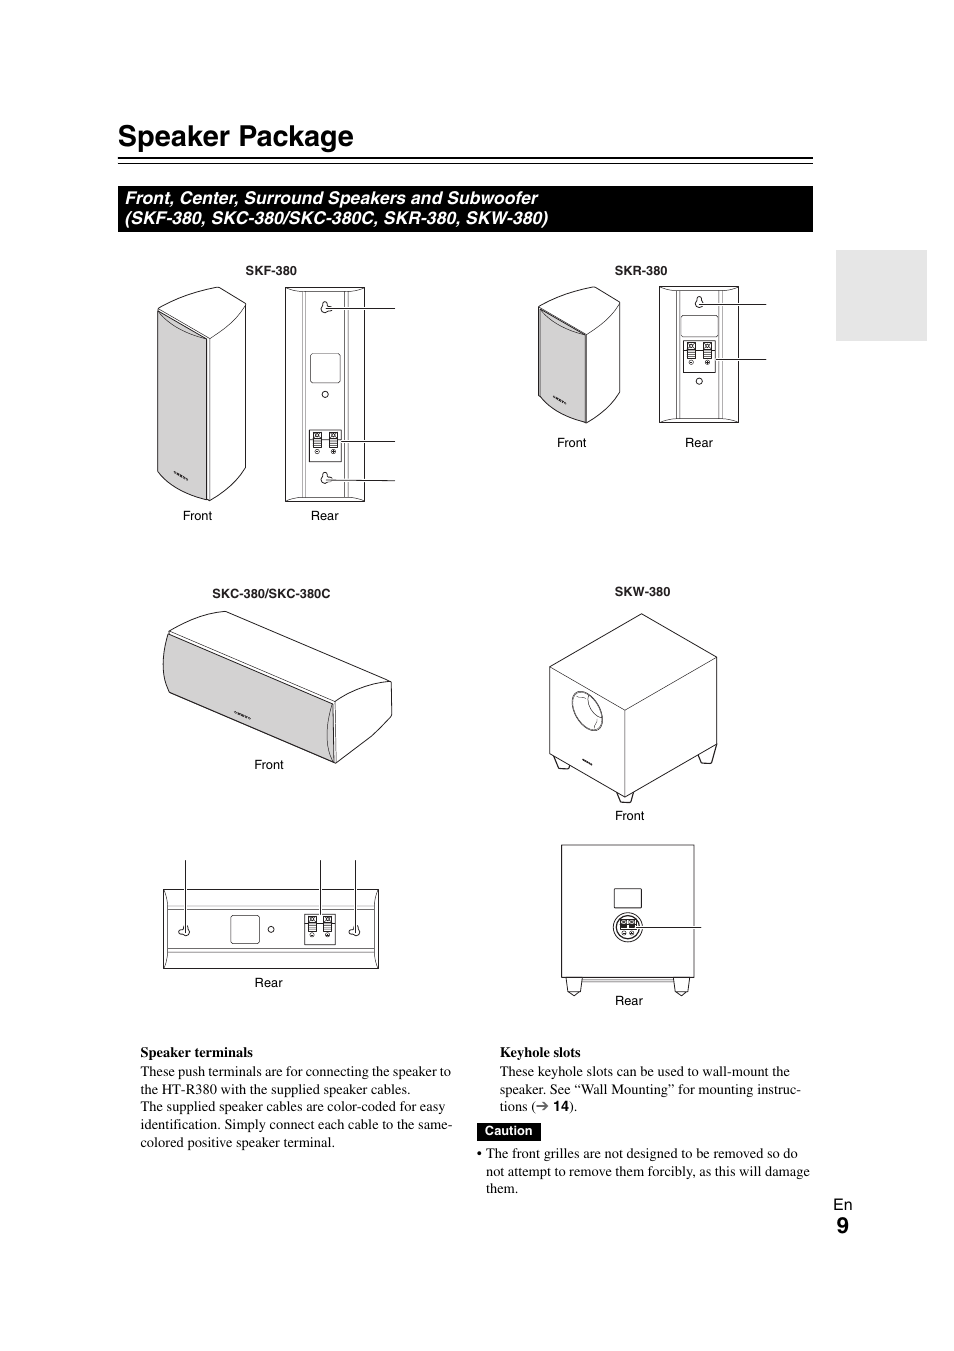 Onkyo S3300 Manual Schematics York Wiring B1hp Array Speaker Package Ht User Page 9 56 Rh Manualsdir